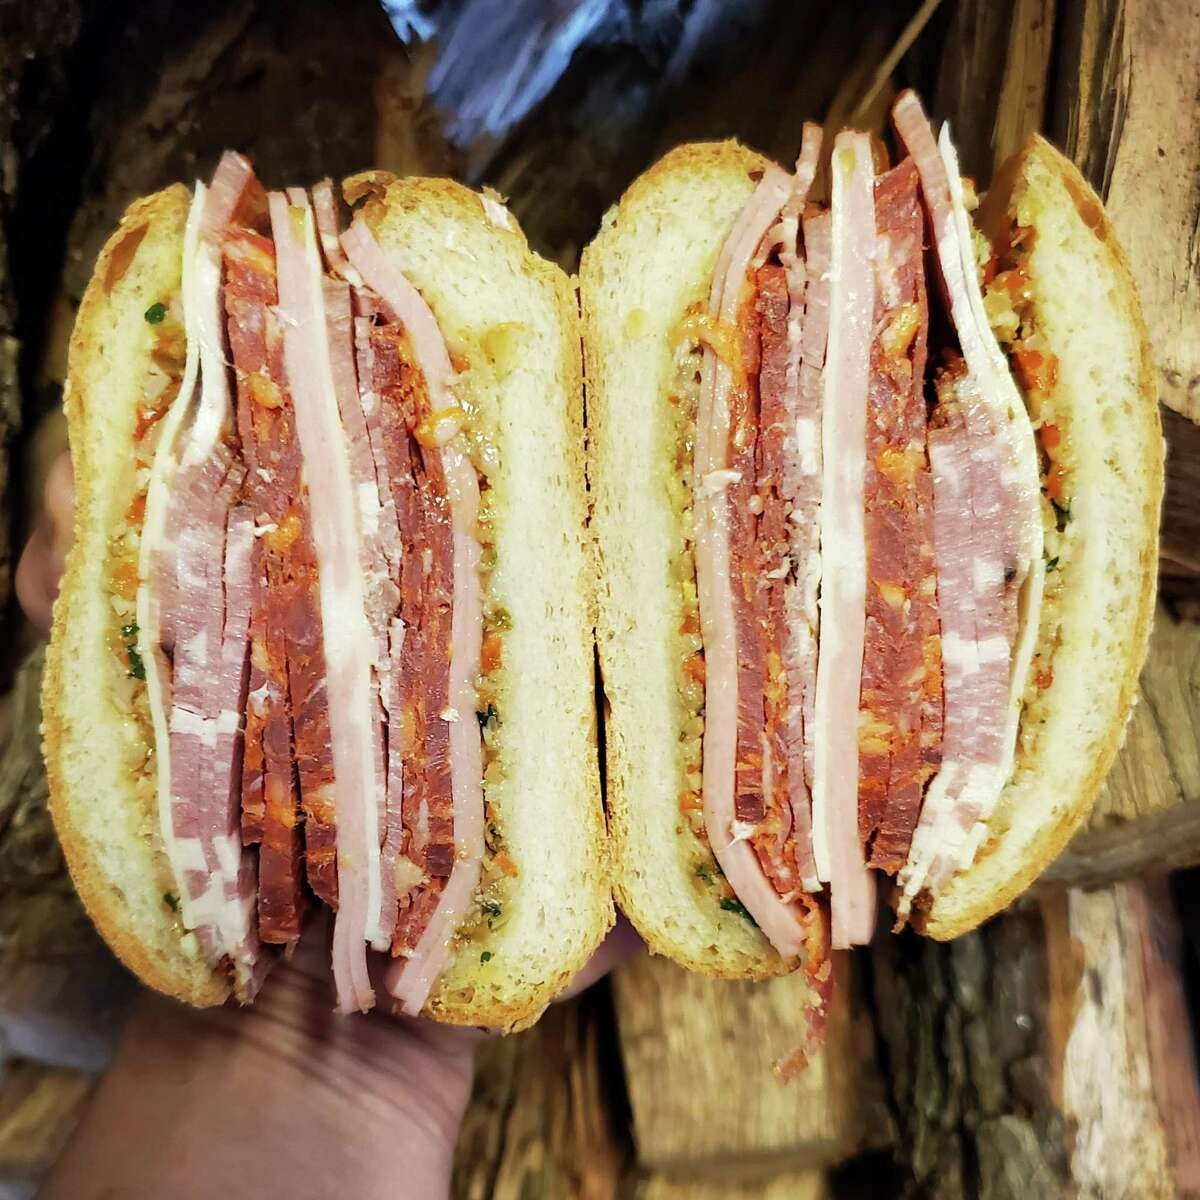 Blood Bros. BBQ has created a new muffuletta sandwich made with house-made smoked capicola, mortadella, soppressata, provolone and olive spread. It will come on the menu as an occasional special.